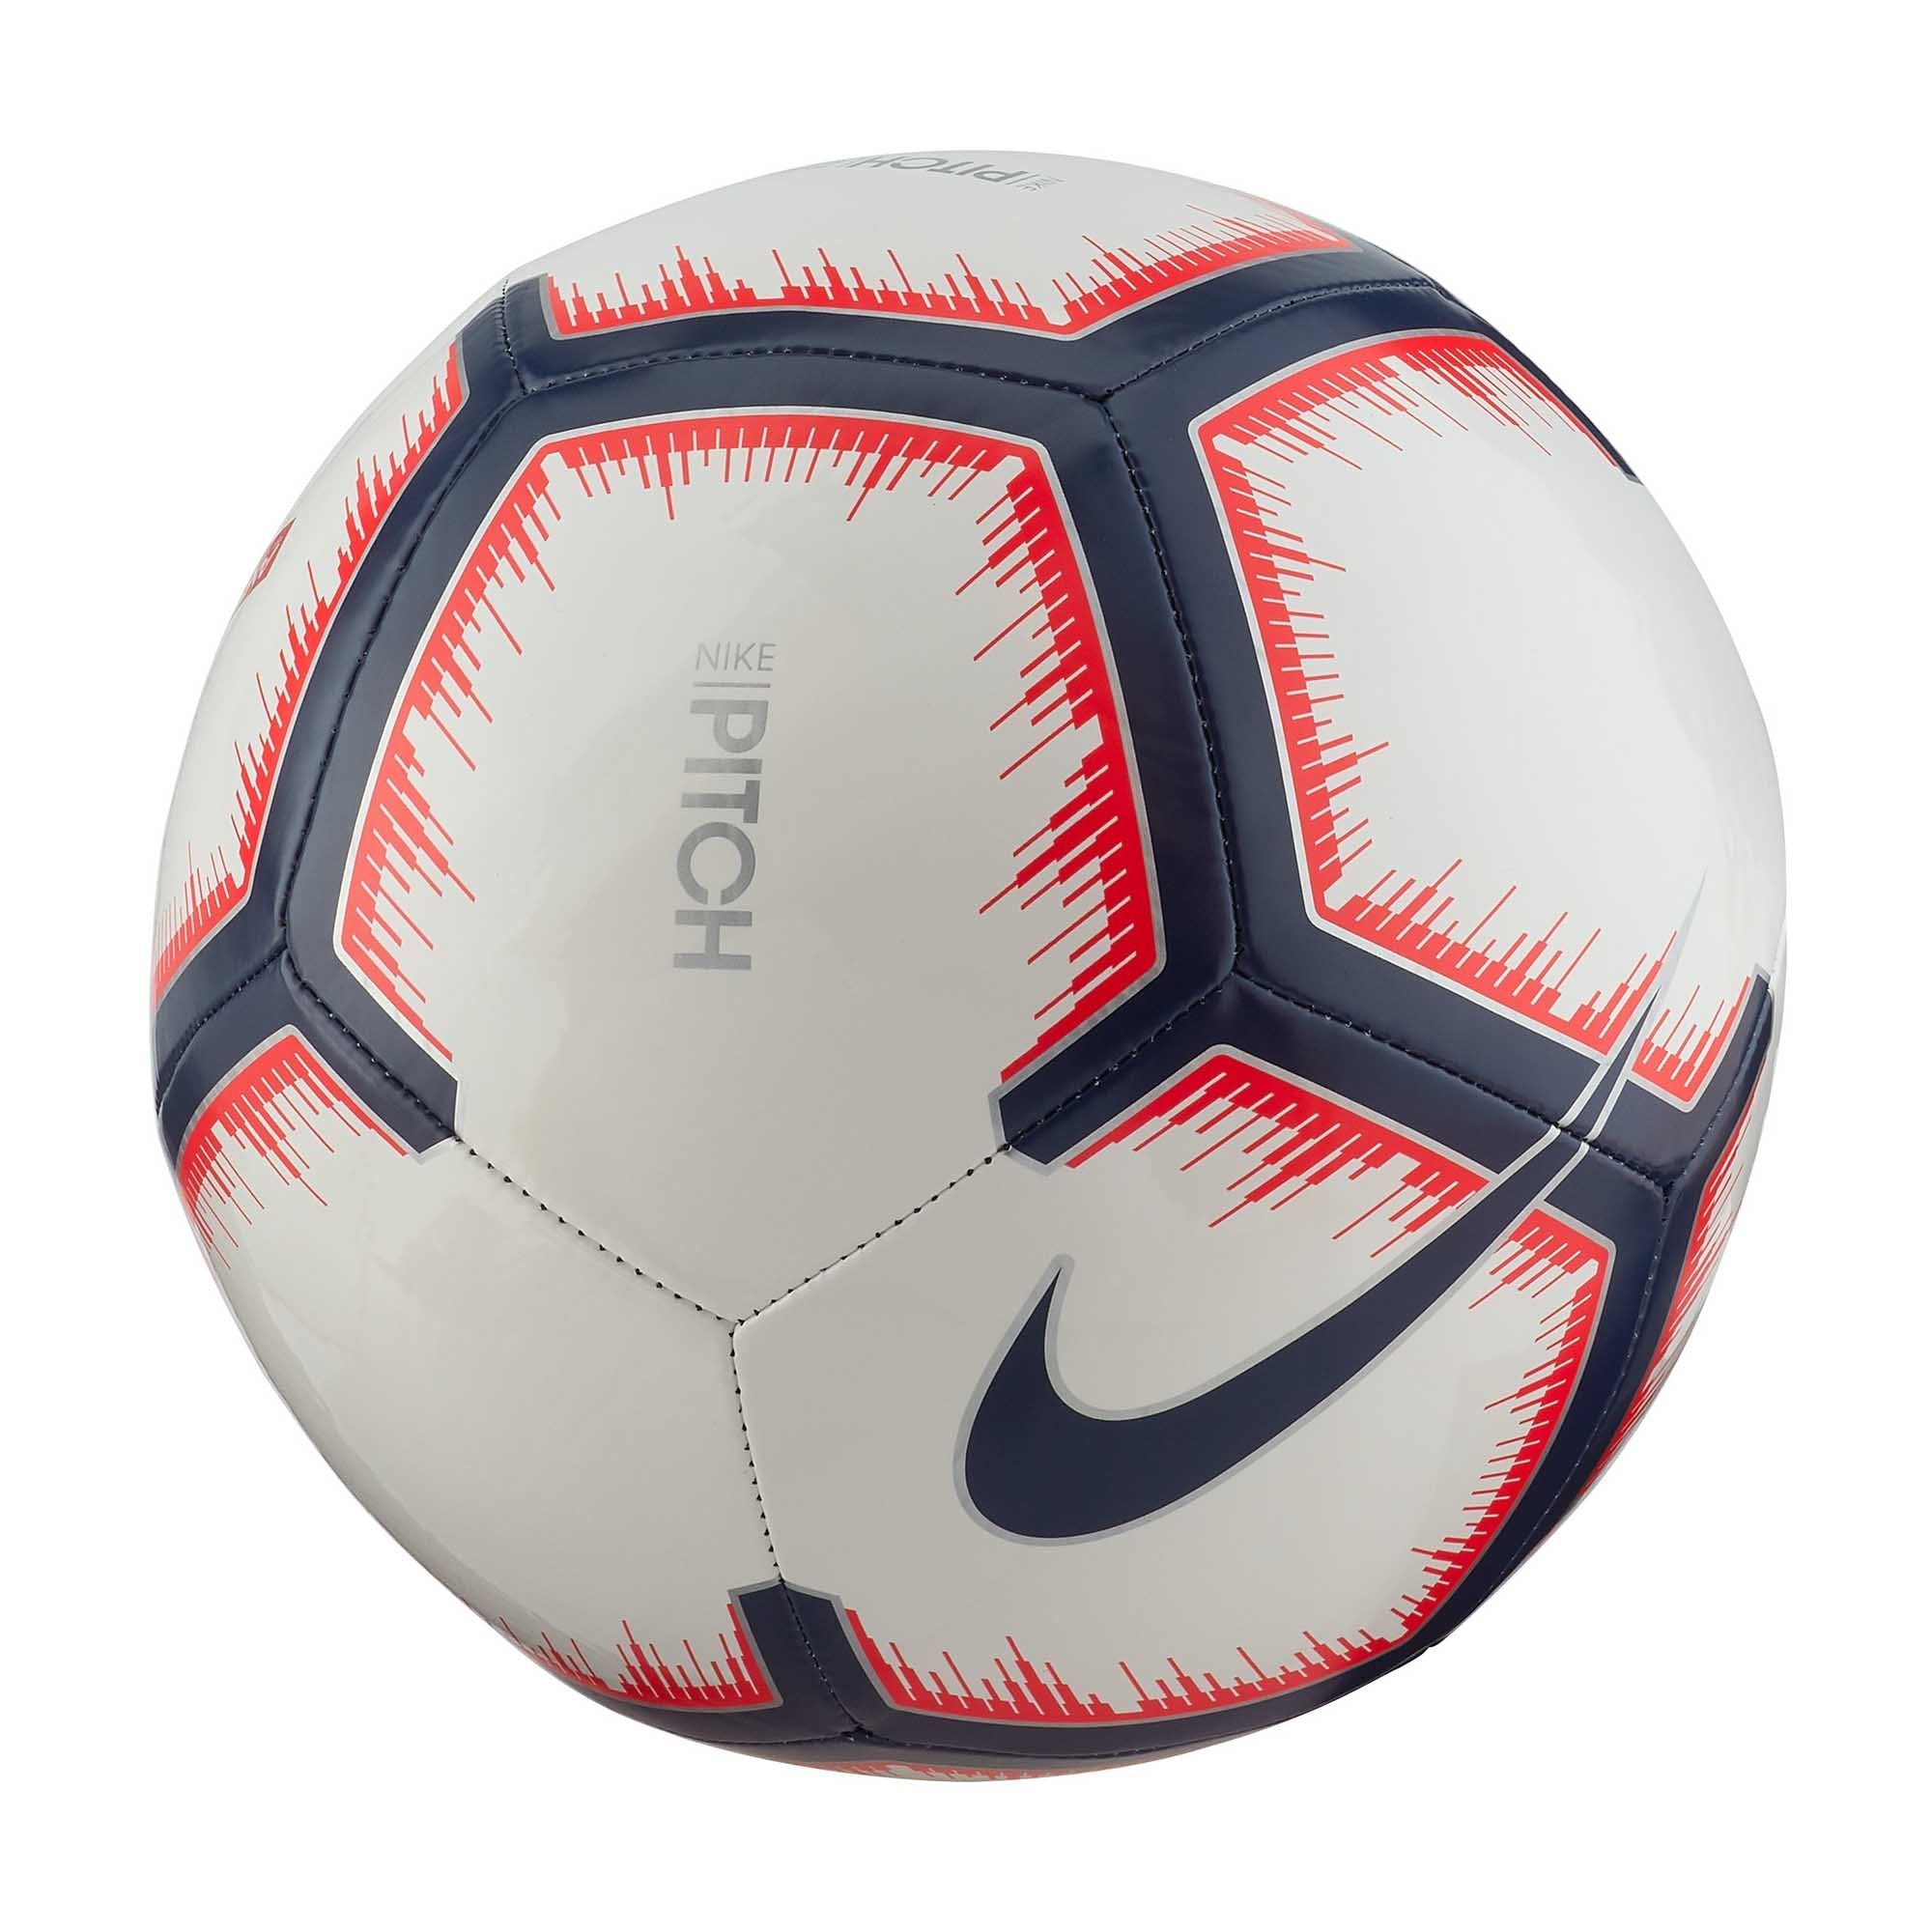 21fb84b1a Buy Nike Chile Pitch Soccer Ball Online in Singapore